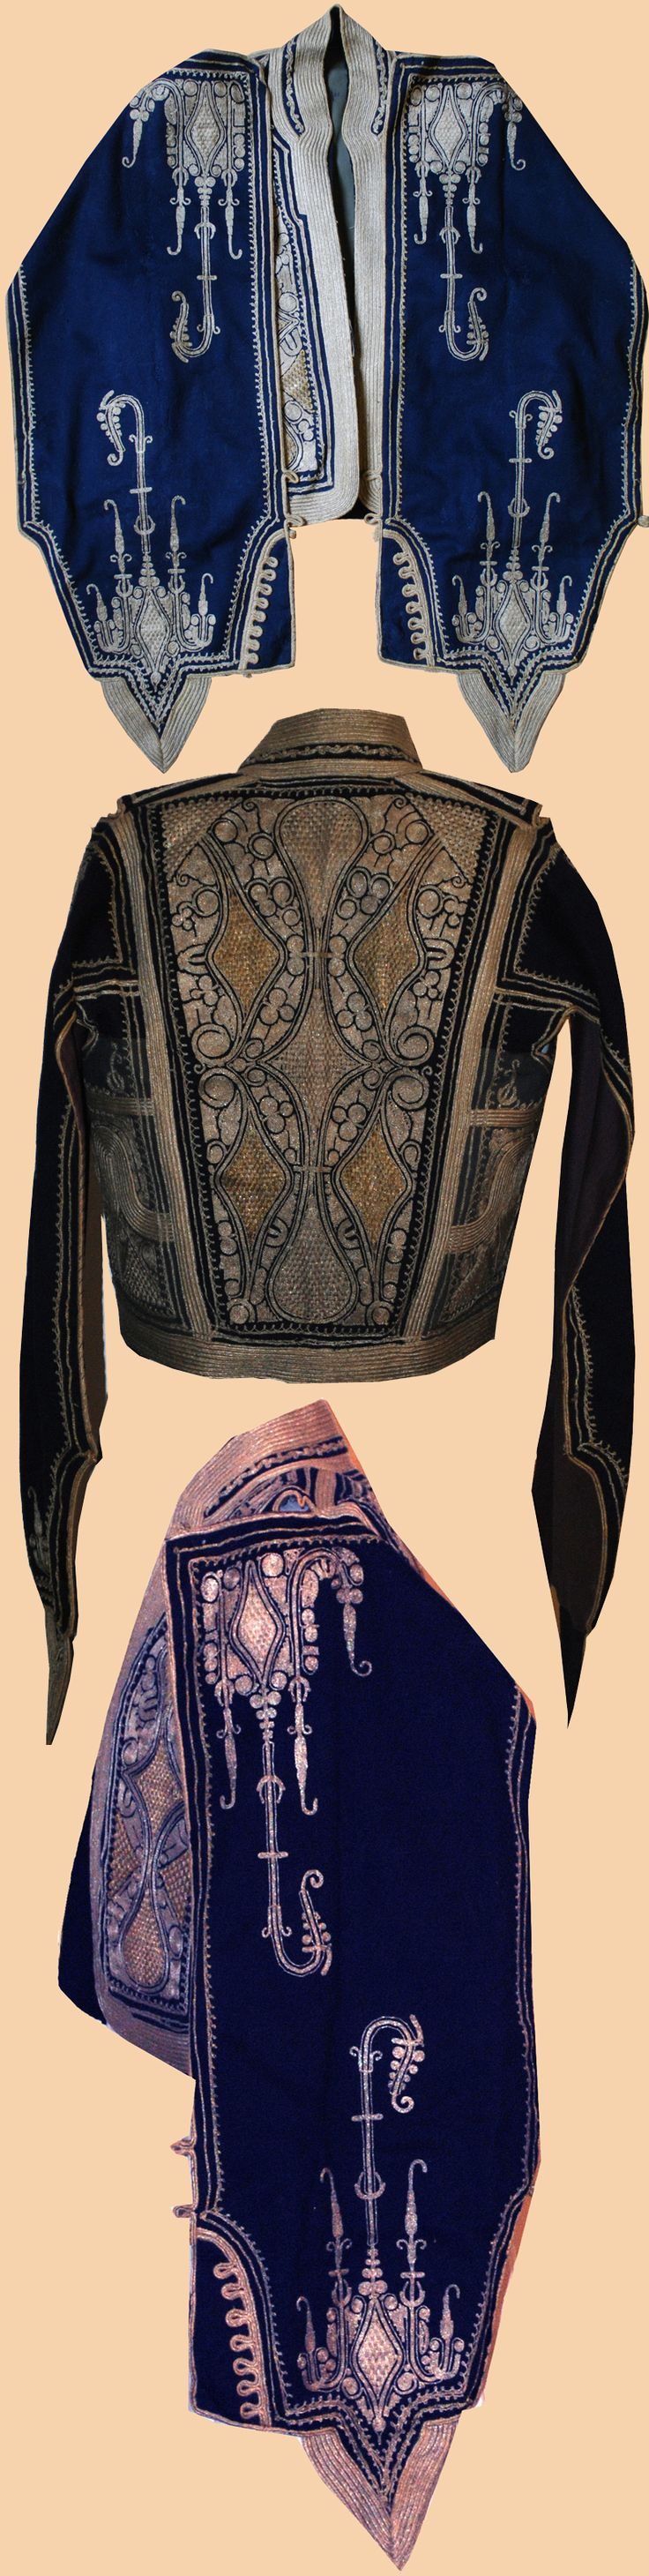 Late-Ottoman 'kartal kollu cepken' (jacket with eagle sleeves), for men. Also called: 'camedan'. Silver embroidery on combing wool. First decade of the 20th century.